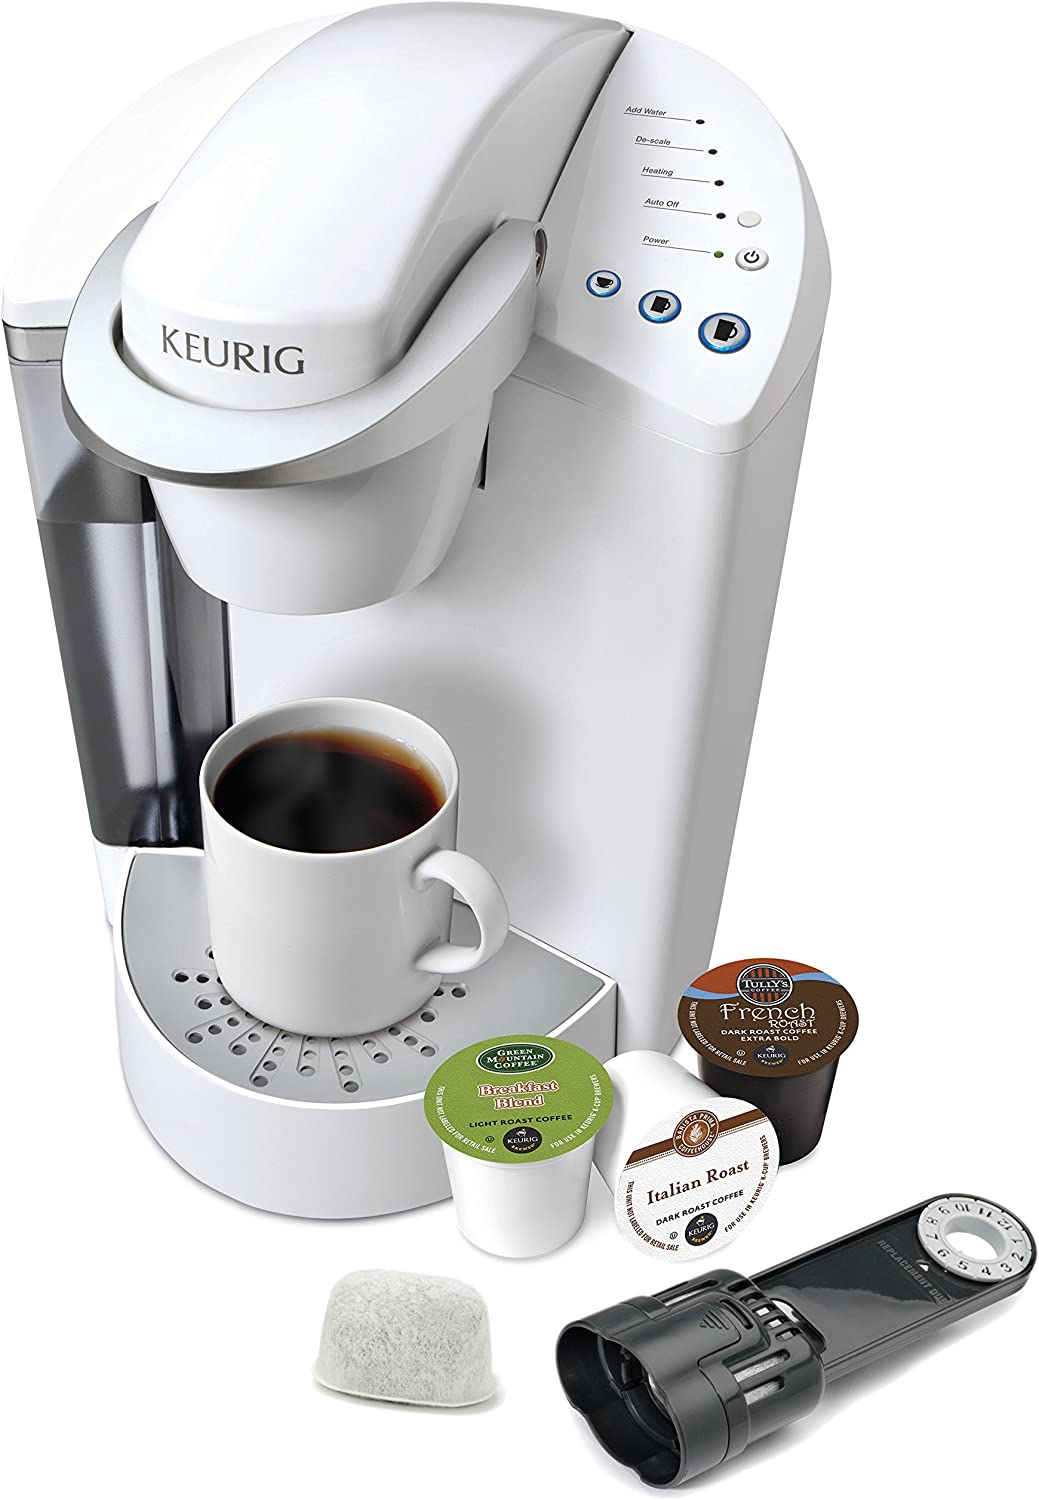 Amazon.com: Keurig K45 Elite Cafetera, Blanco coco: Kitchen ...